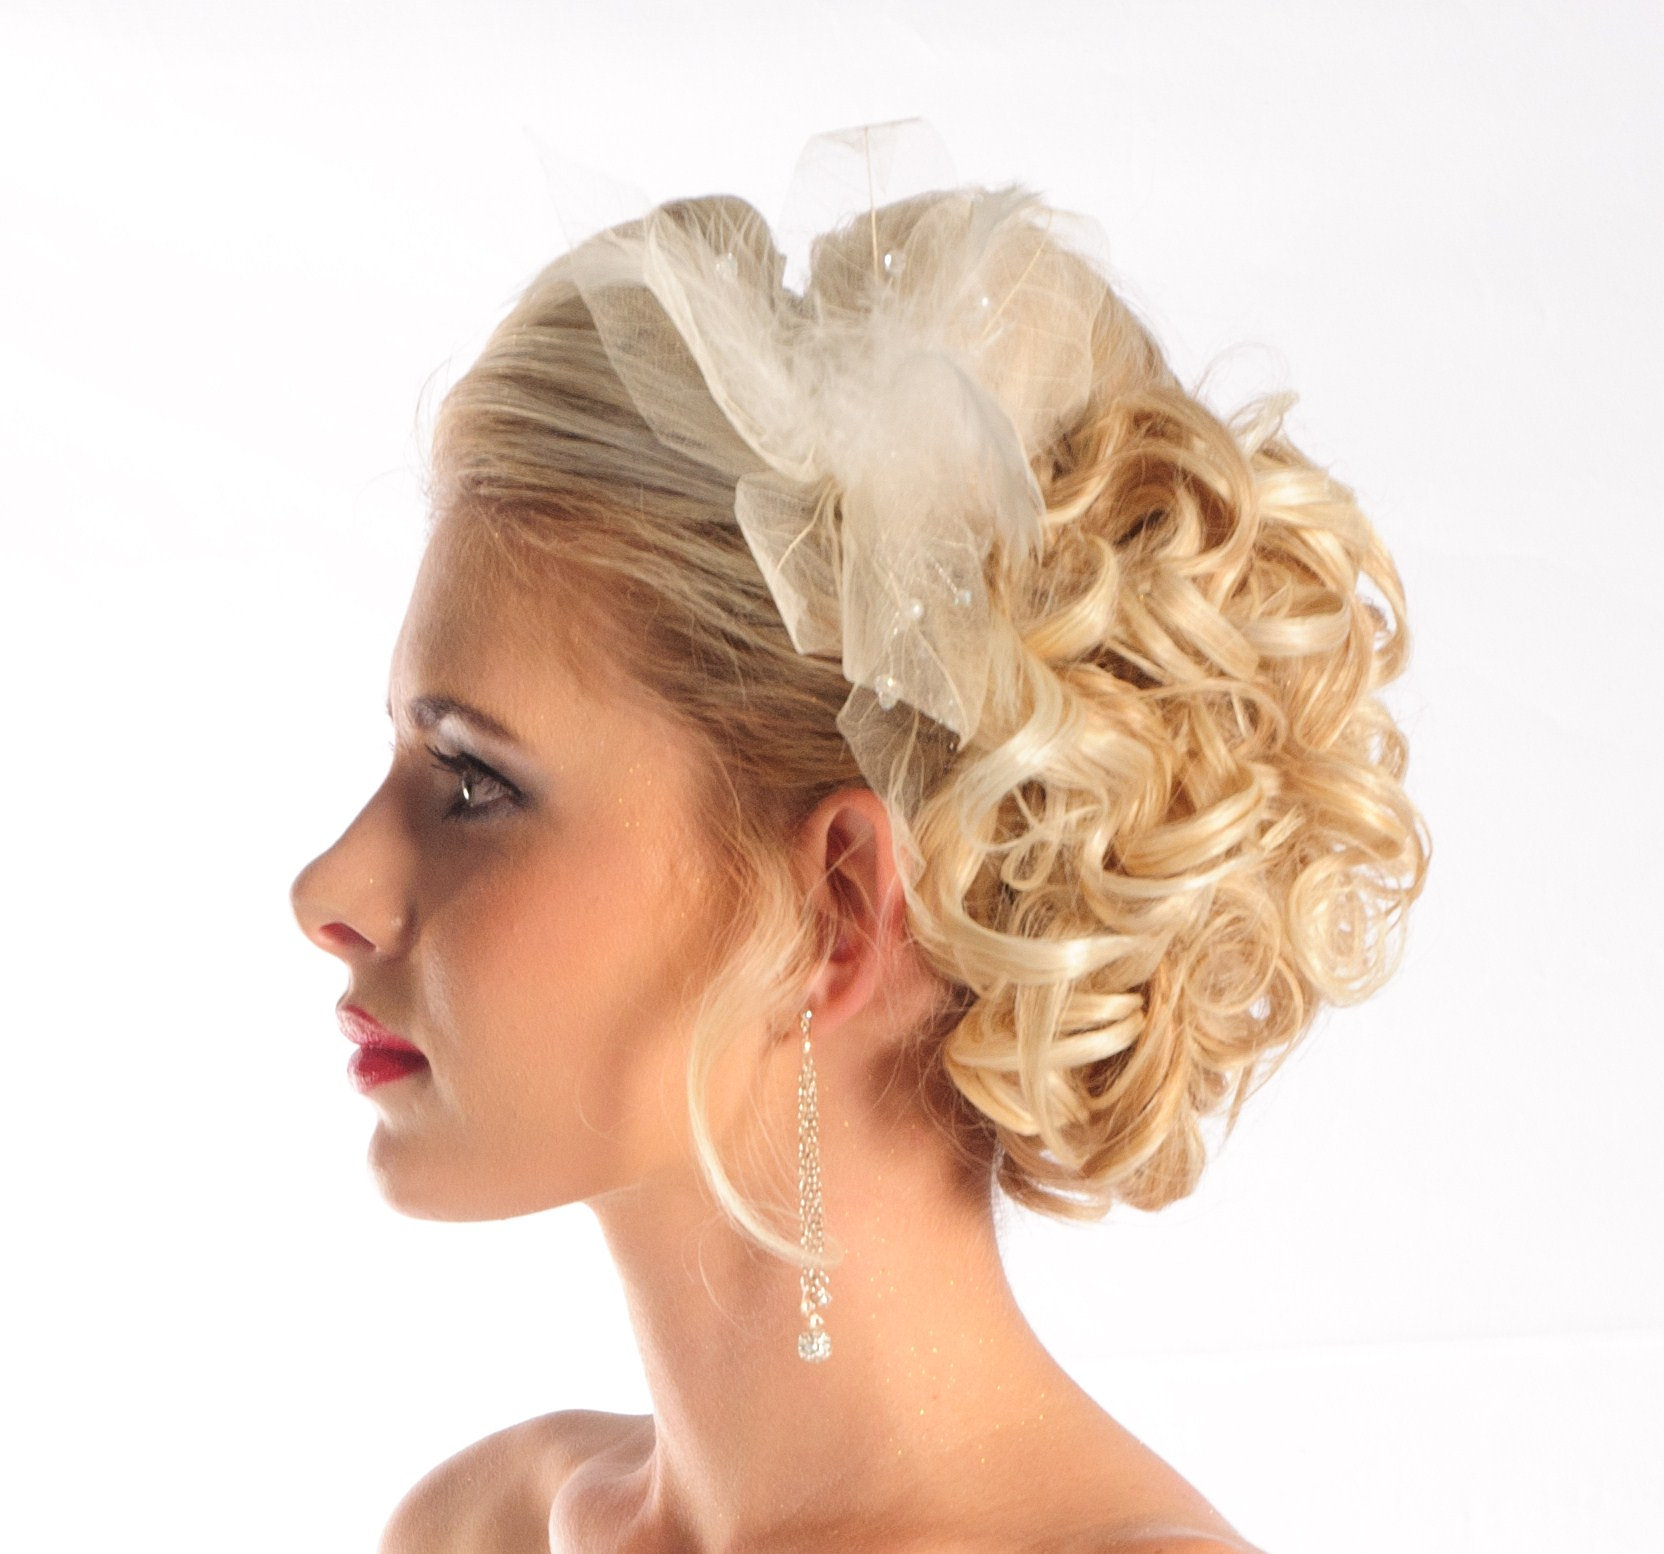 Helenas crown. Wedding headpieces, jewellery accessories. South Africa